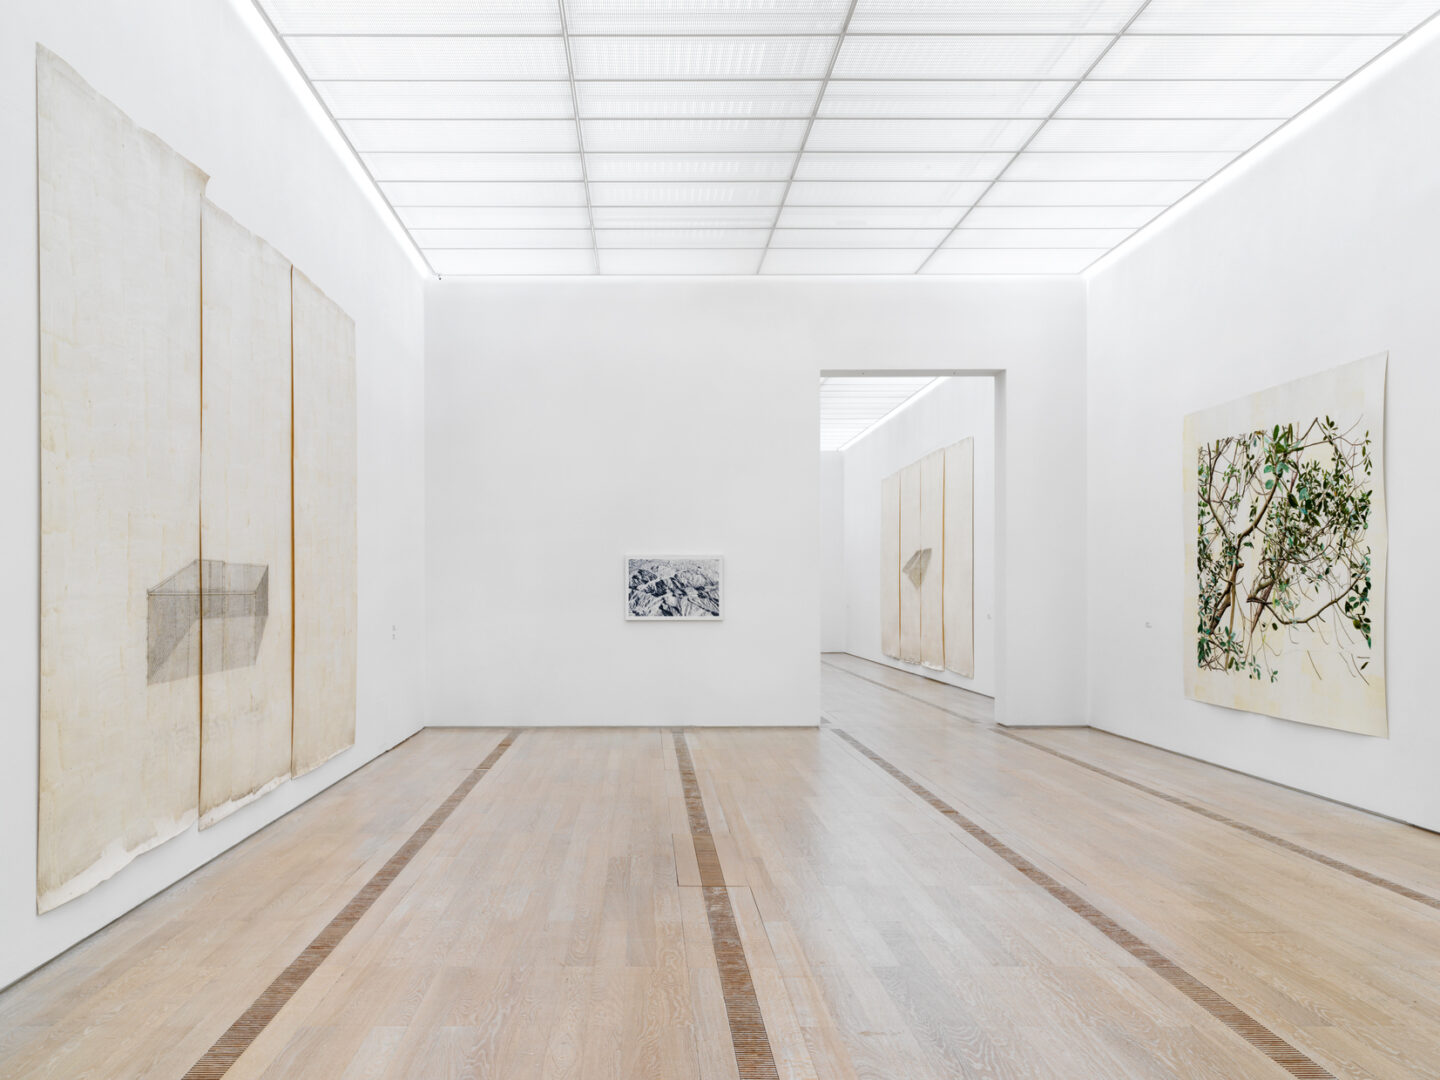 Exhibition View Groupshow «Resonating Spaces; view on Toba Khedoori» at Fondation Beyeler, Riehen, 2019 / Photo: Stefan Altenburger / Courtesy: the artist and Fondation Beyeler